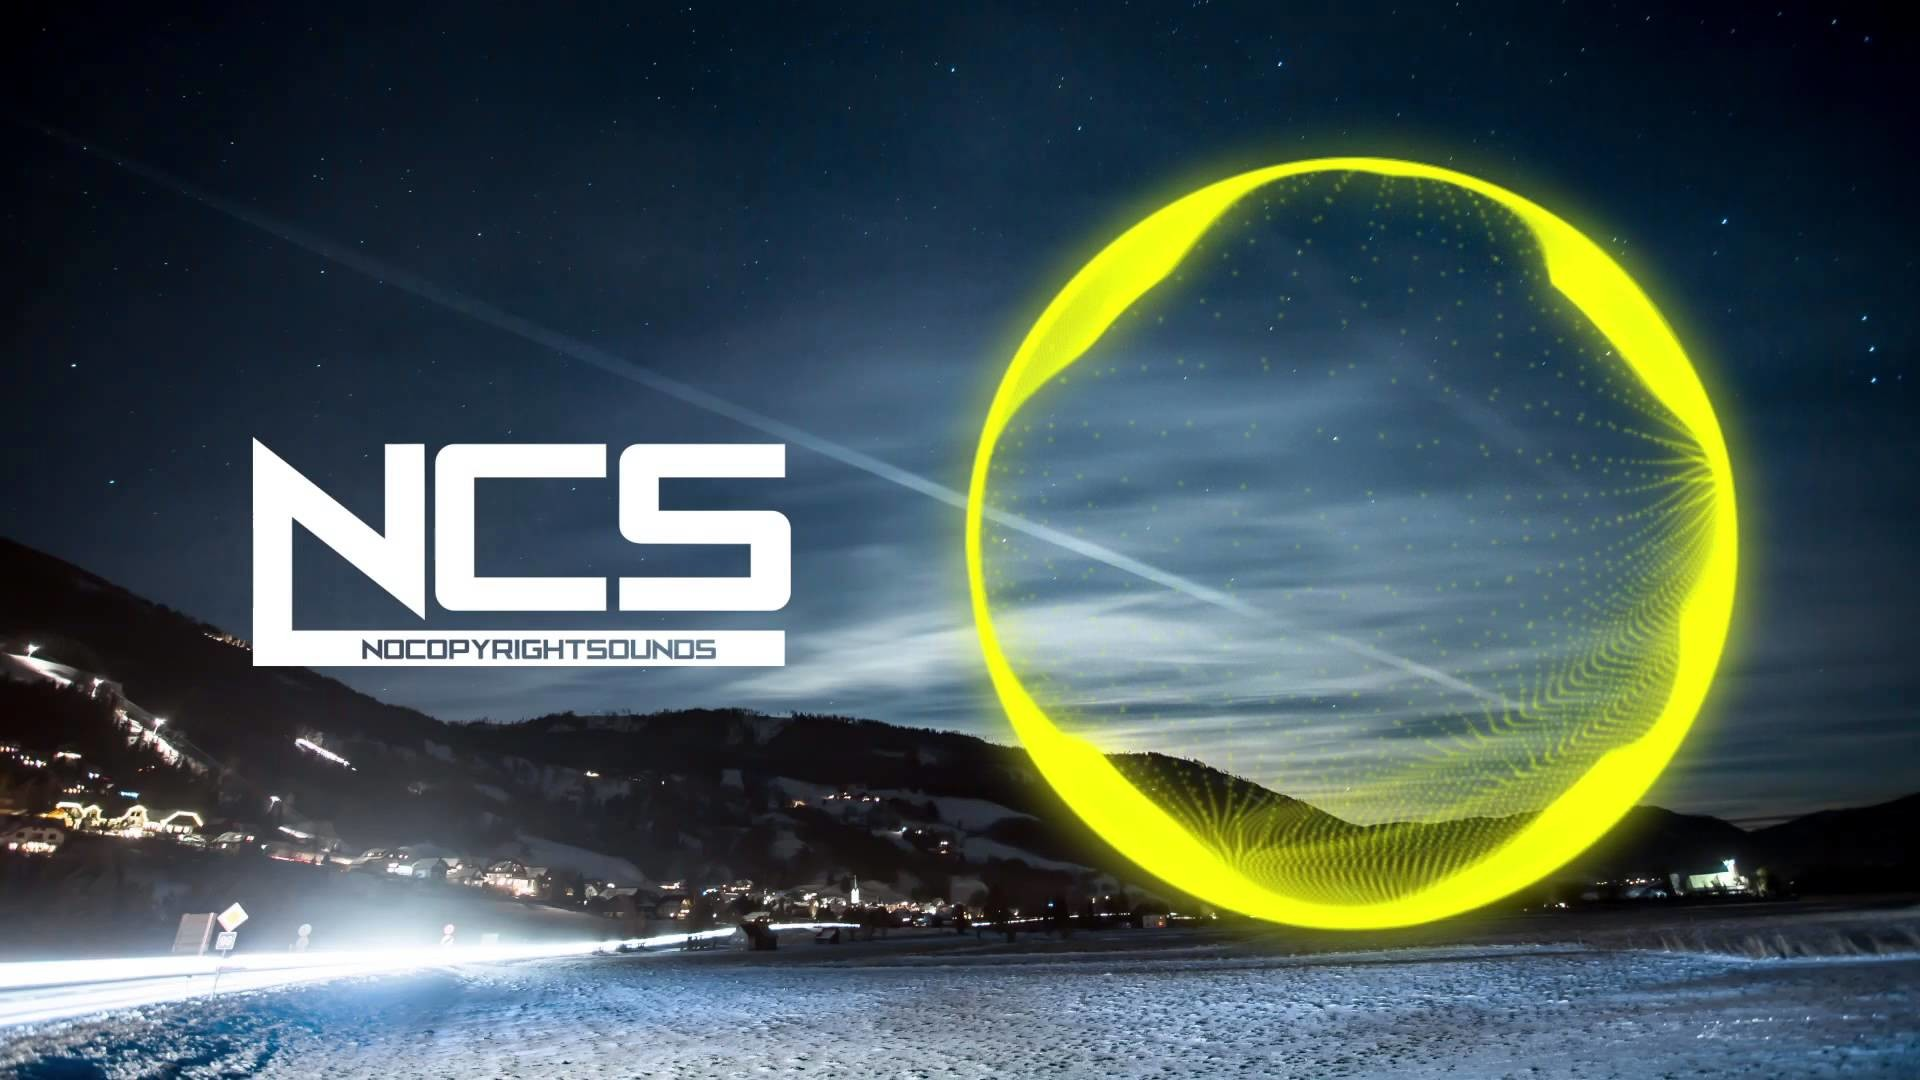 Ncs Wallpapers (74+ pictures)